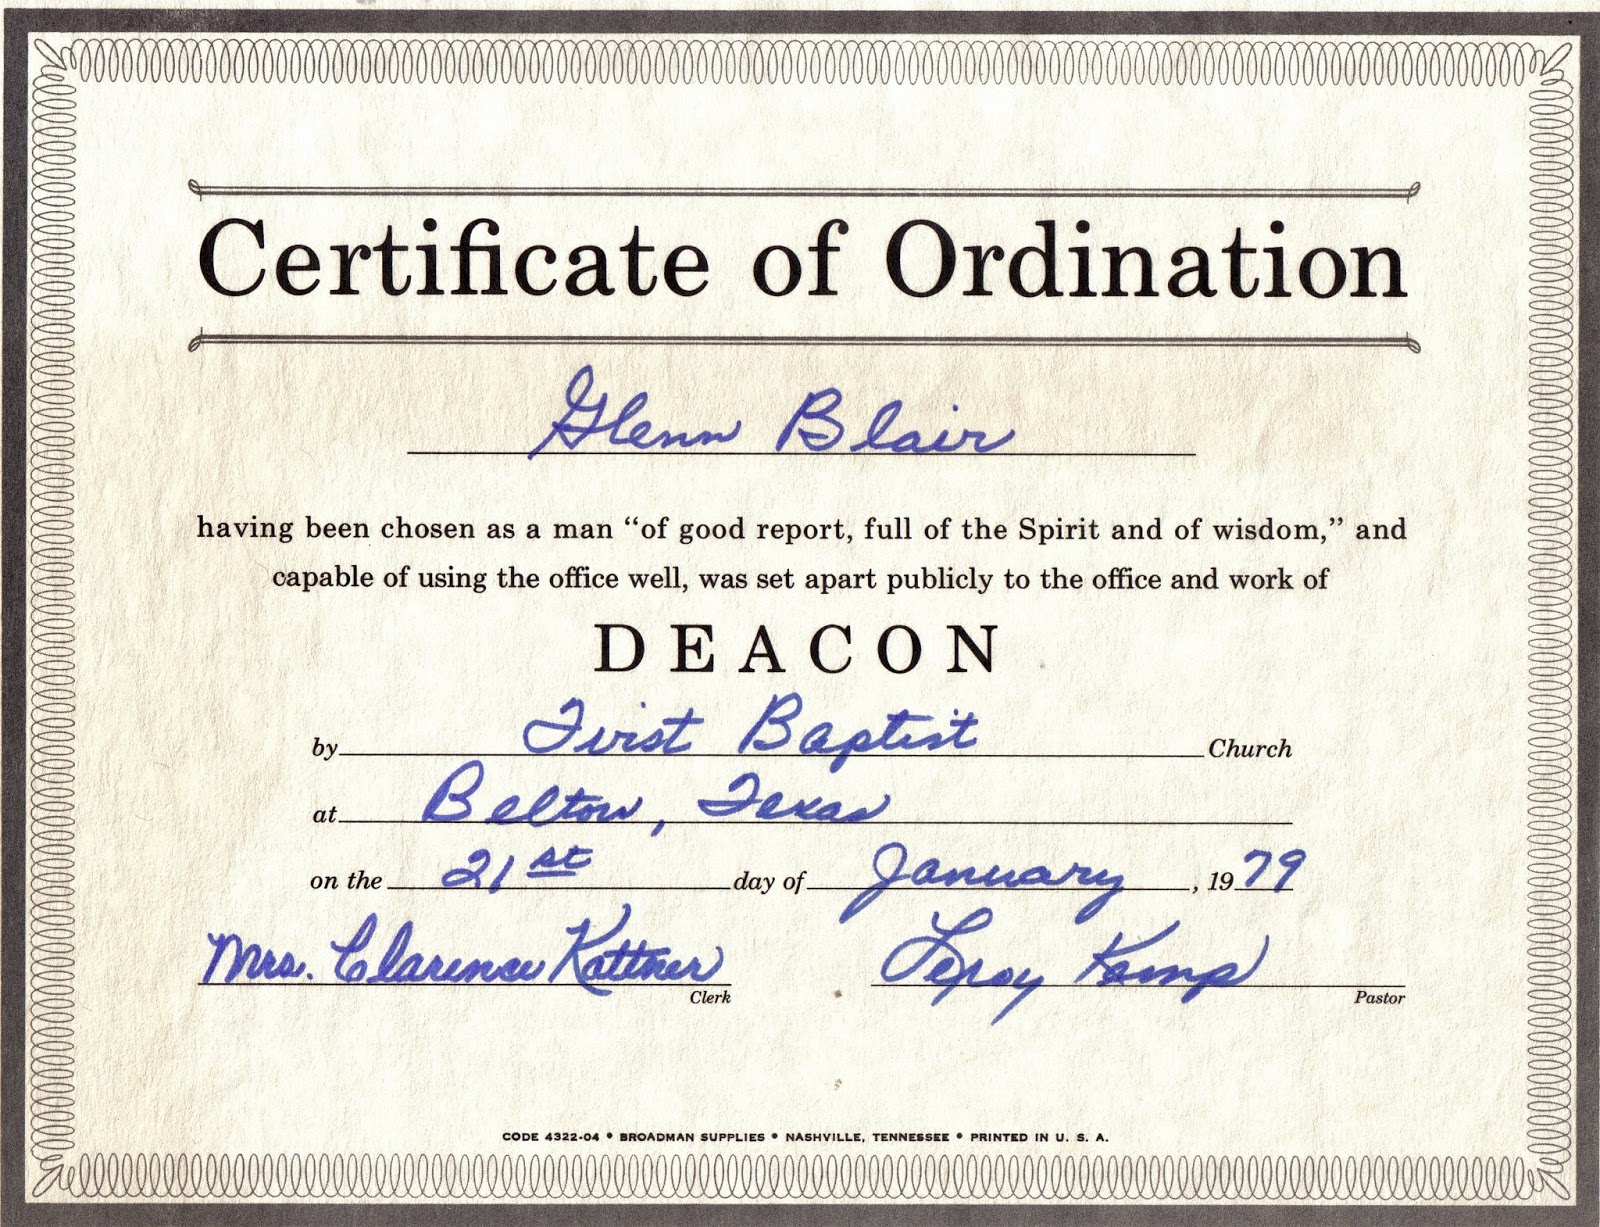 deacon ordination certificate template the family history of billy blair robert glenn wanda